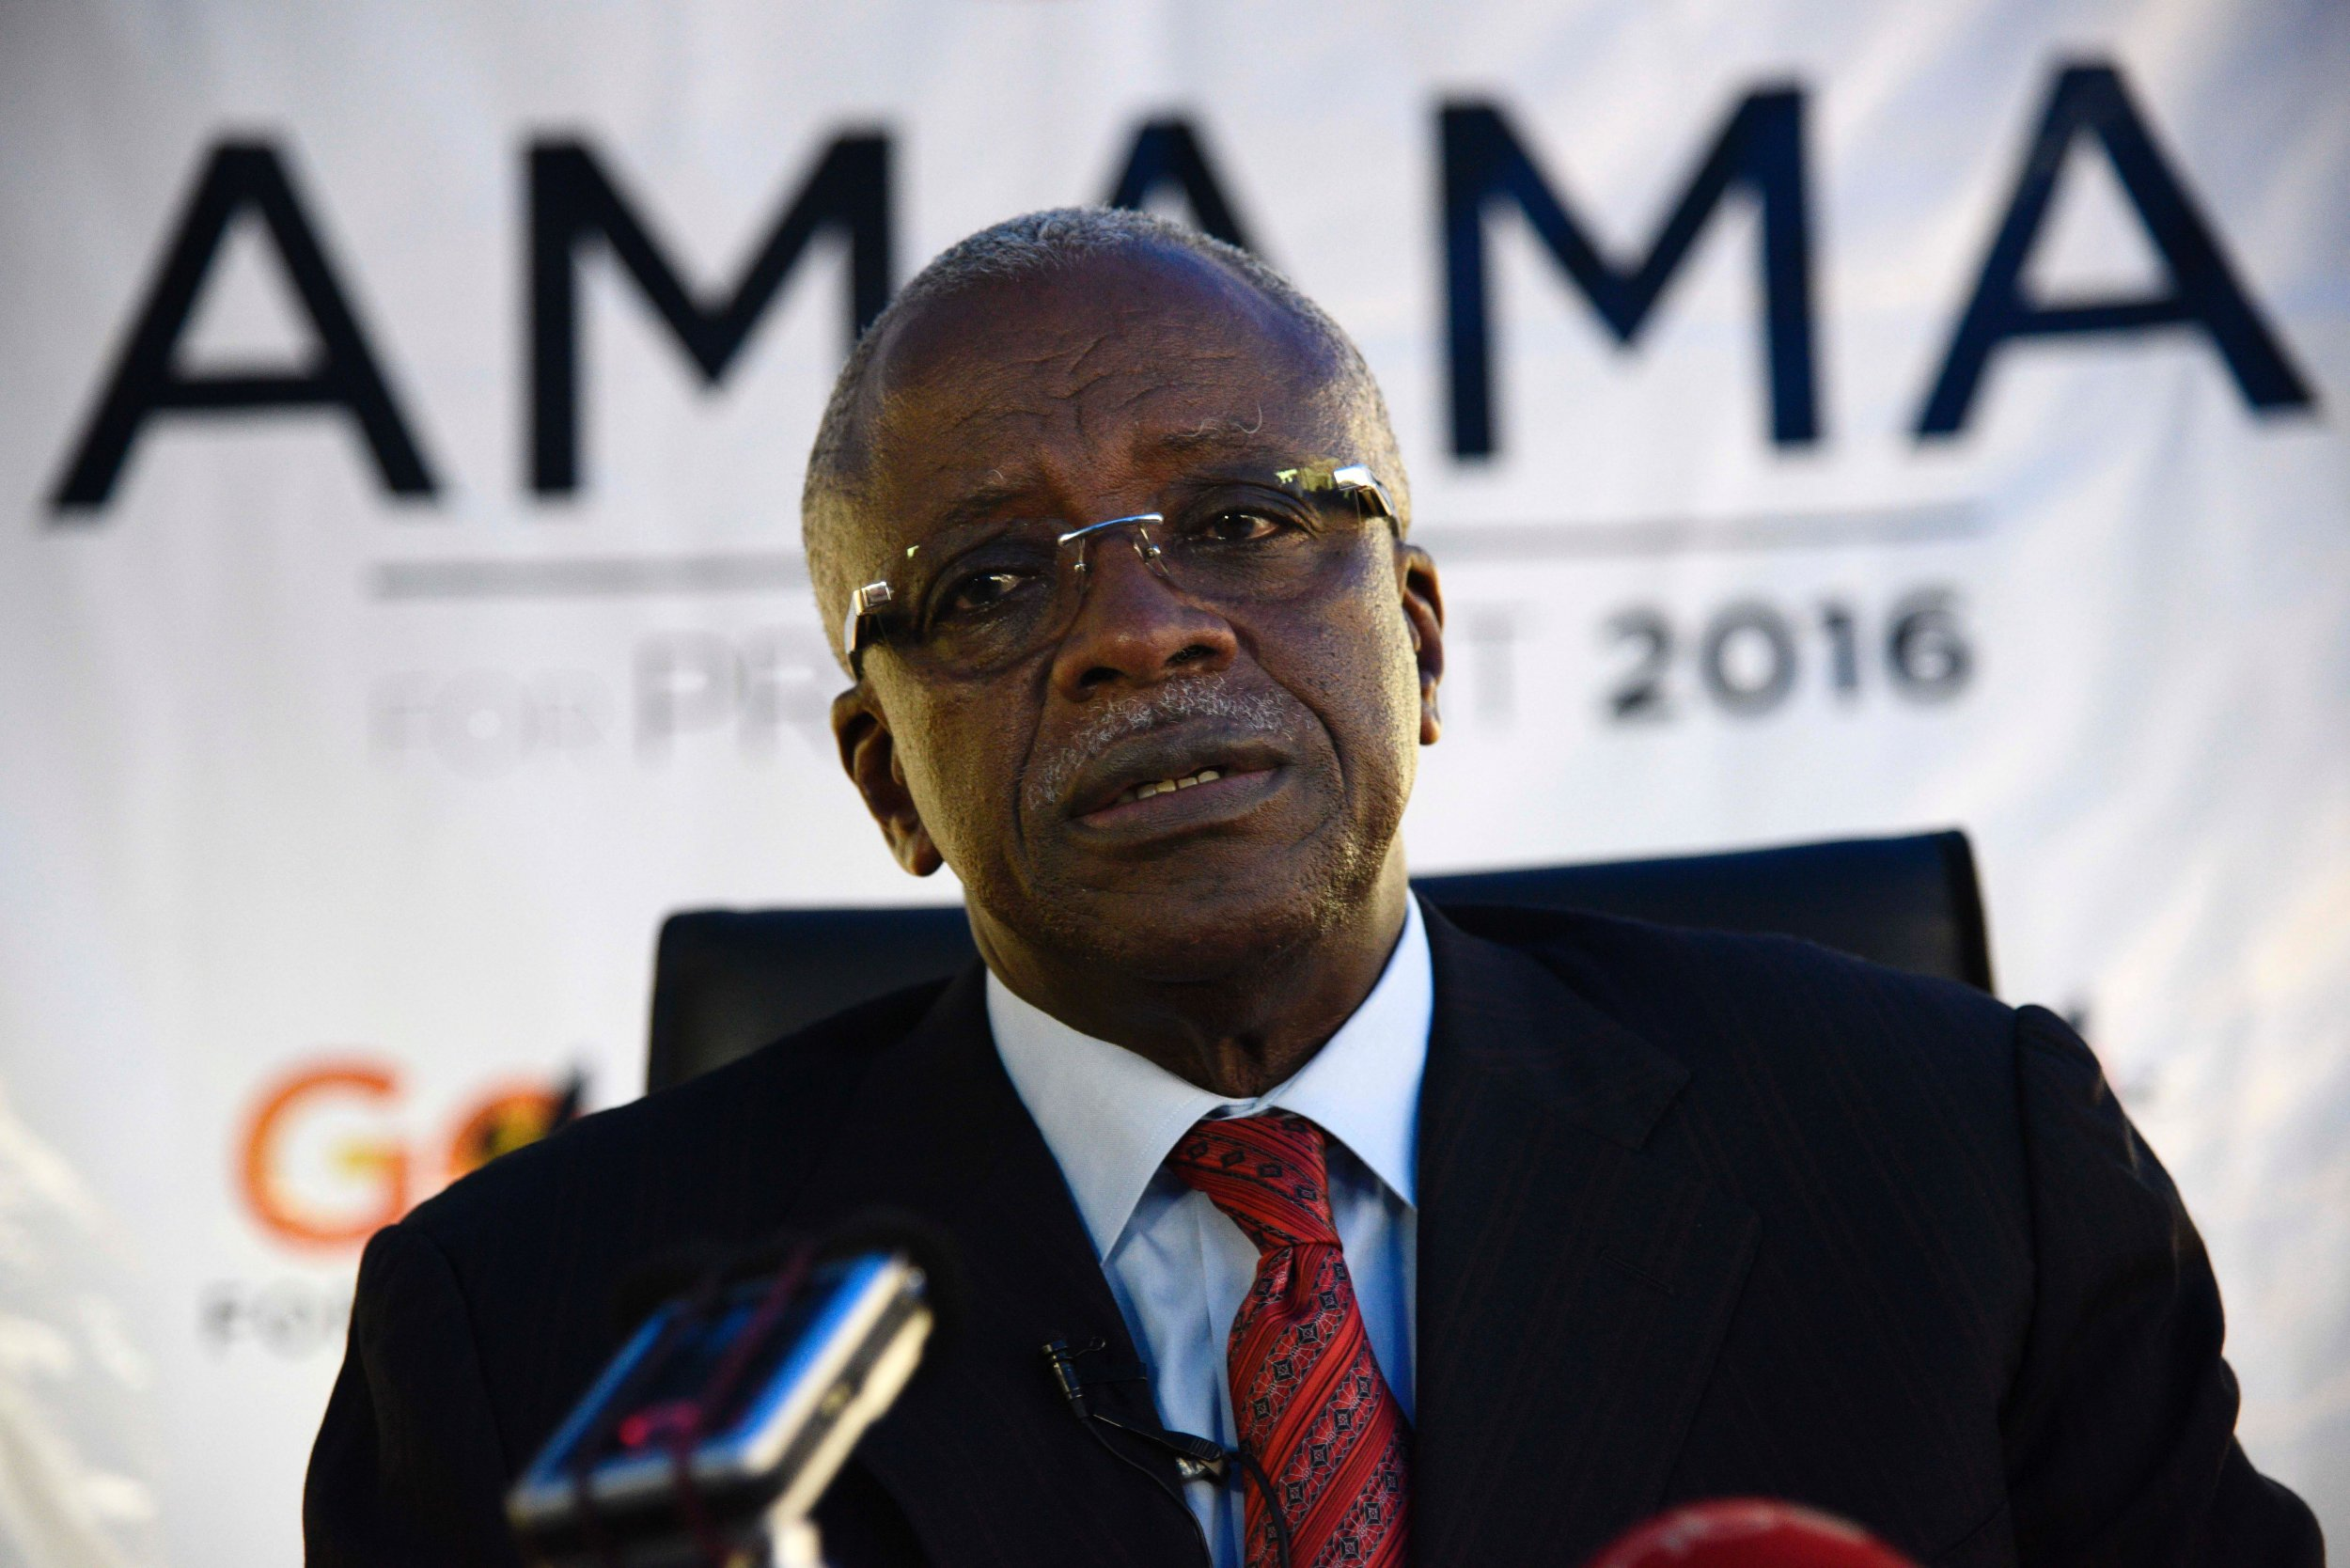 Amama Mbabazi addresses the media in Kampala, Uganda.